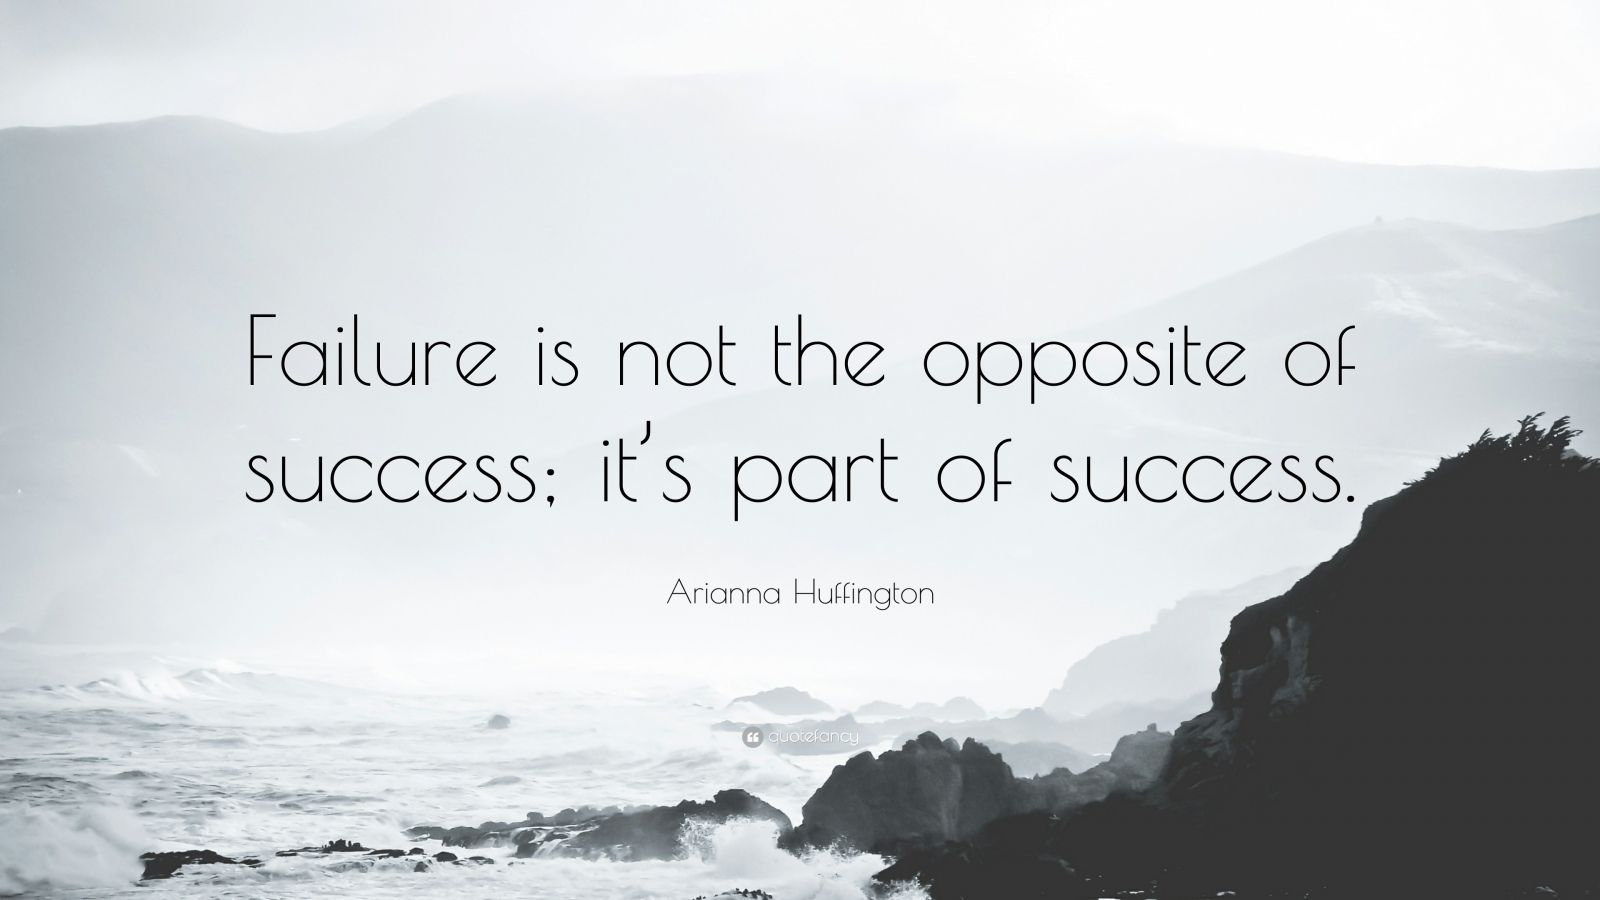 arianna huffington quote   u201cfailure is not the opposite of